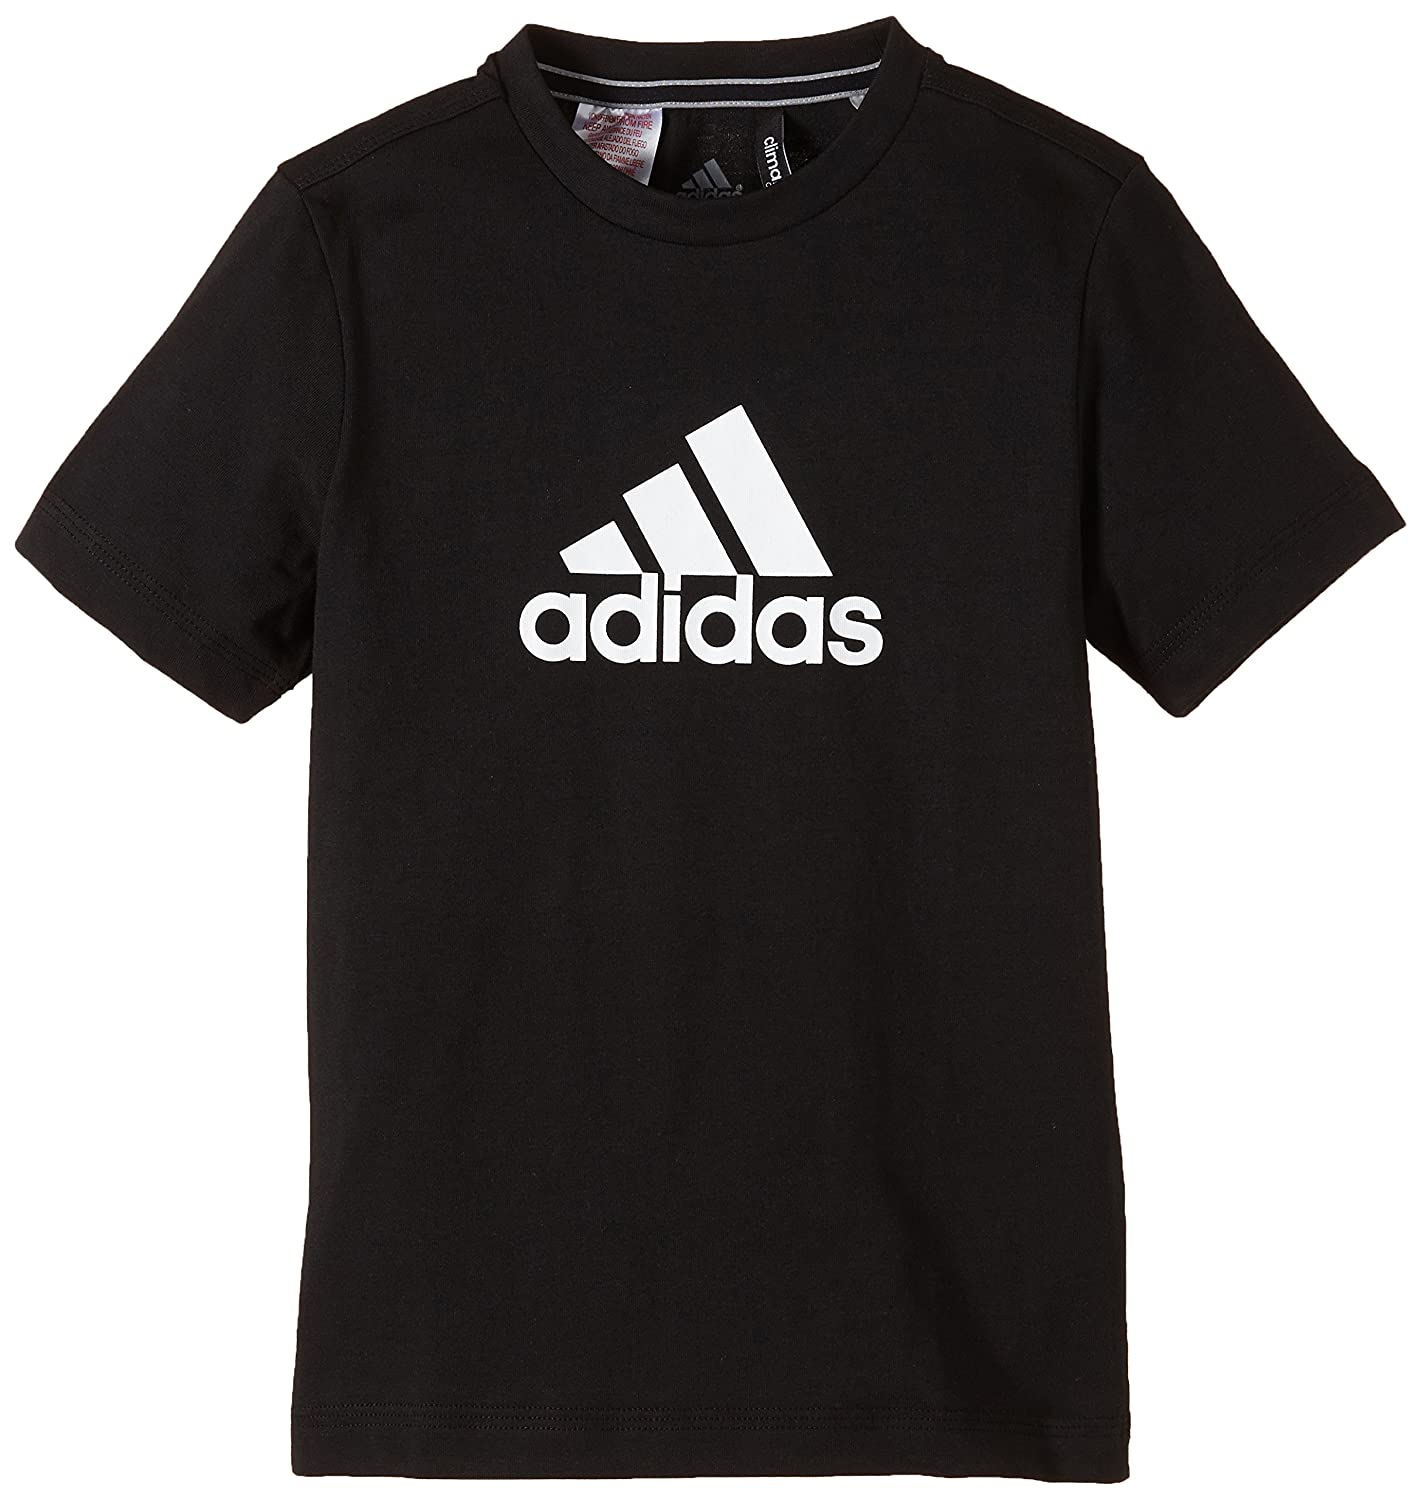 Adidas t shirt black white - Adidas Ess Logo Boys T Shirt Black White Size 128 Amazon Co Uk Sports Outdoors